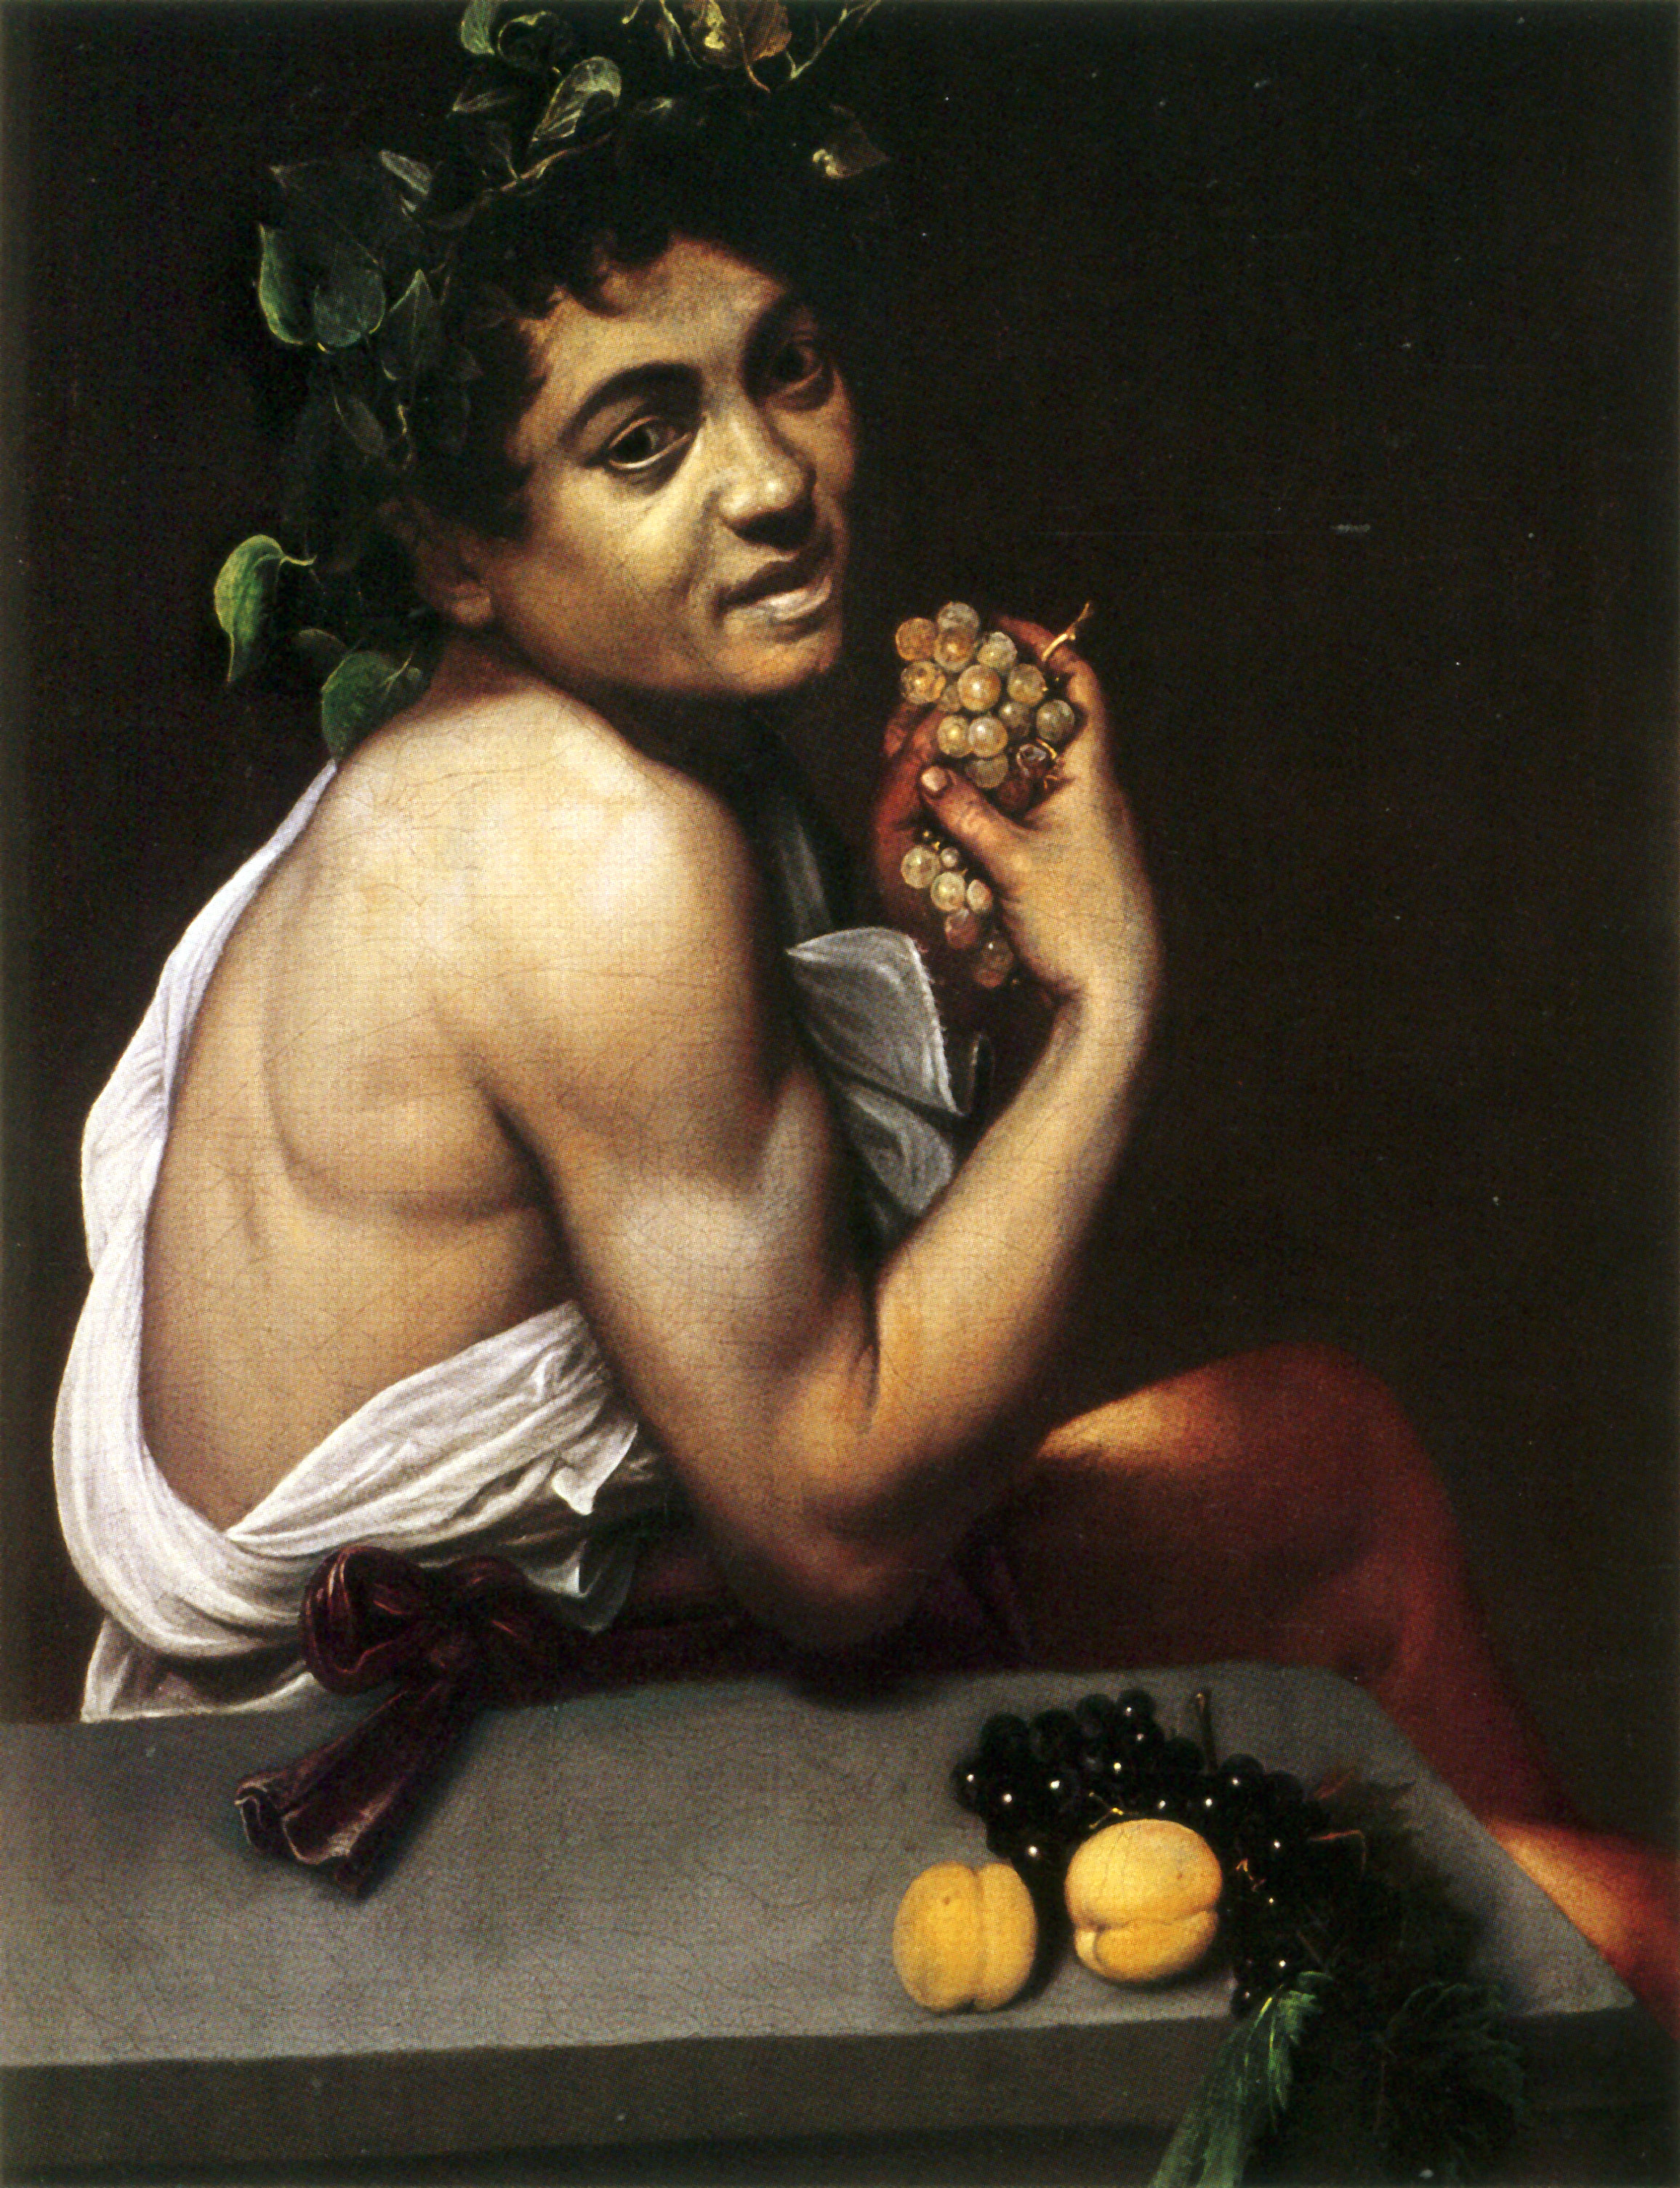 https://upload.wikimedia.org/wikipedia/commons/b/bd/Self-portrait_as_the_Sick_Bacchus_by_Caravaggio.jpg